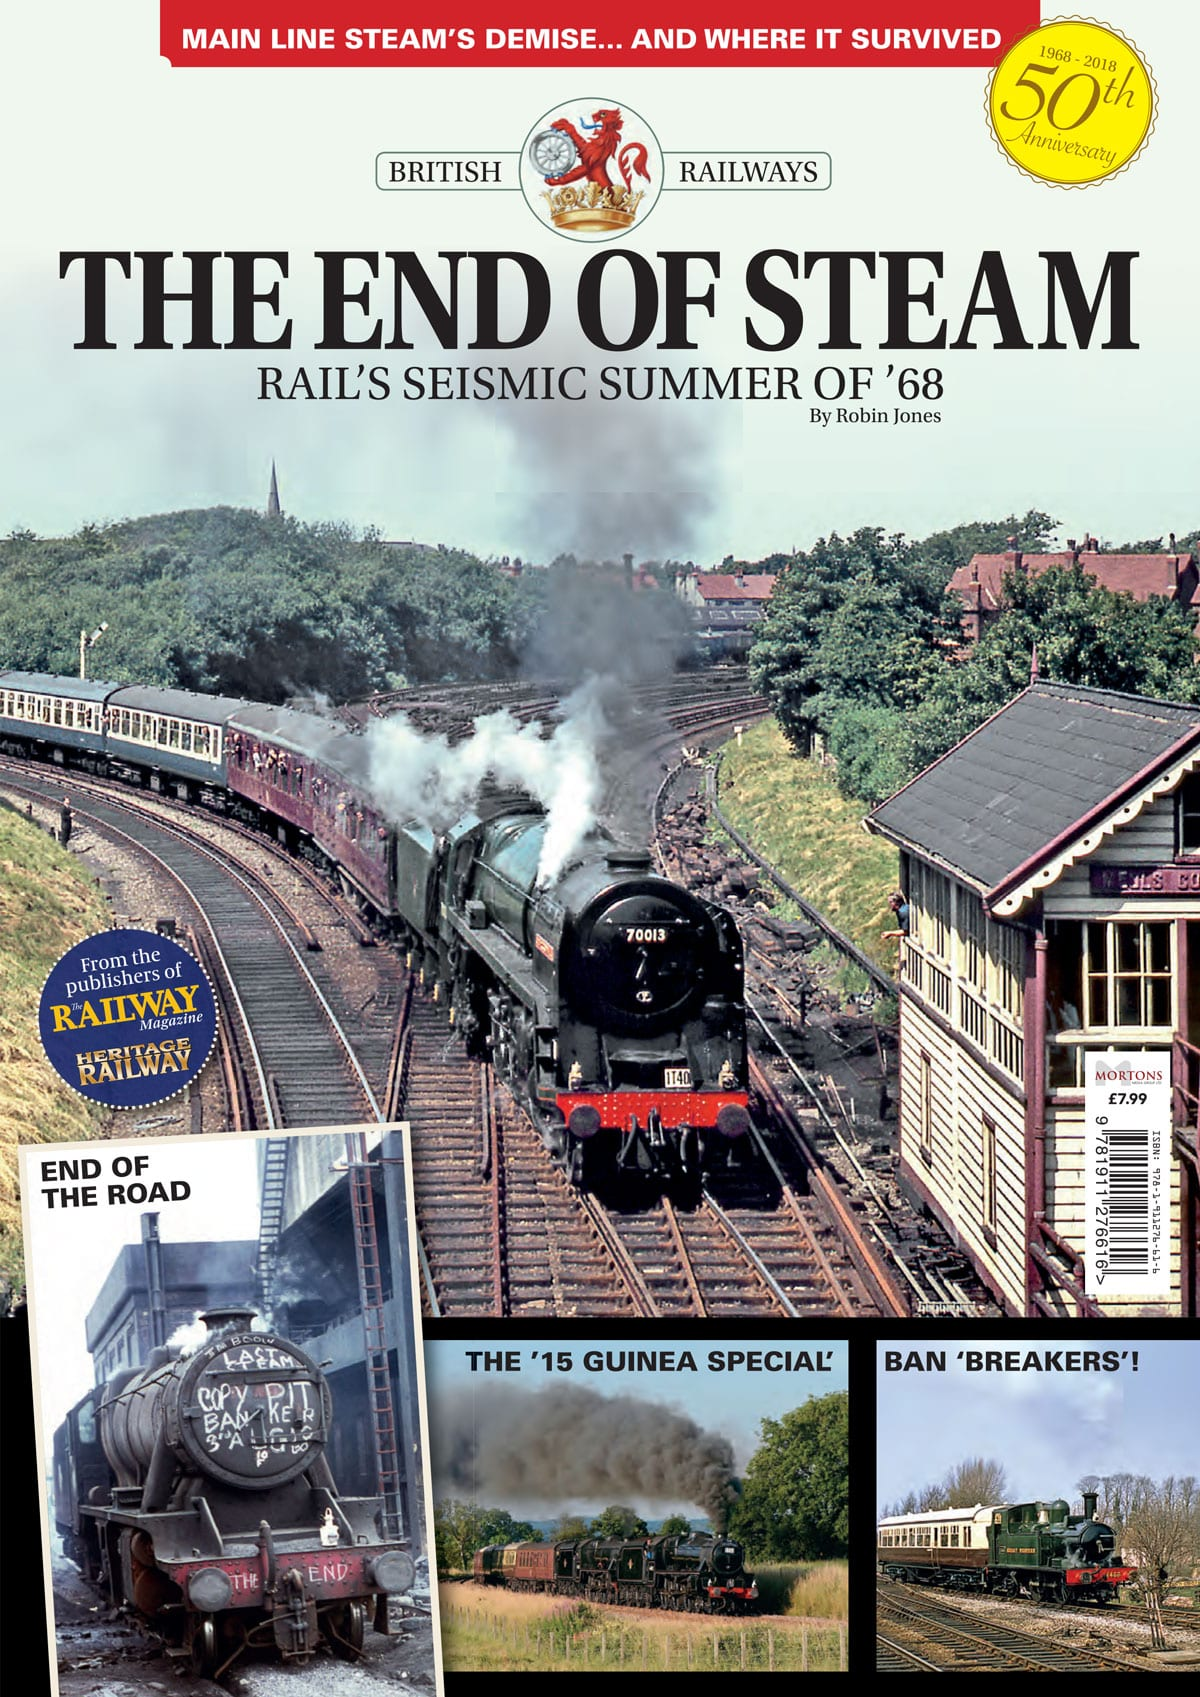 The End of Steam